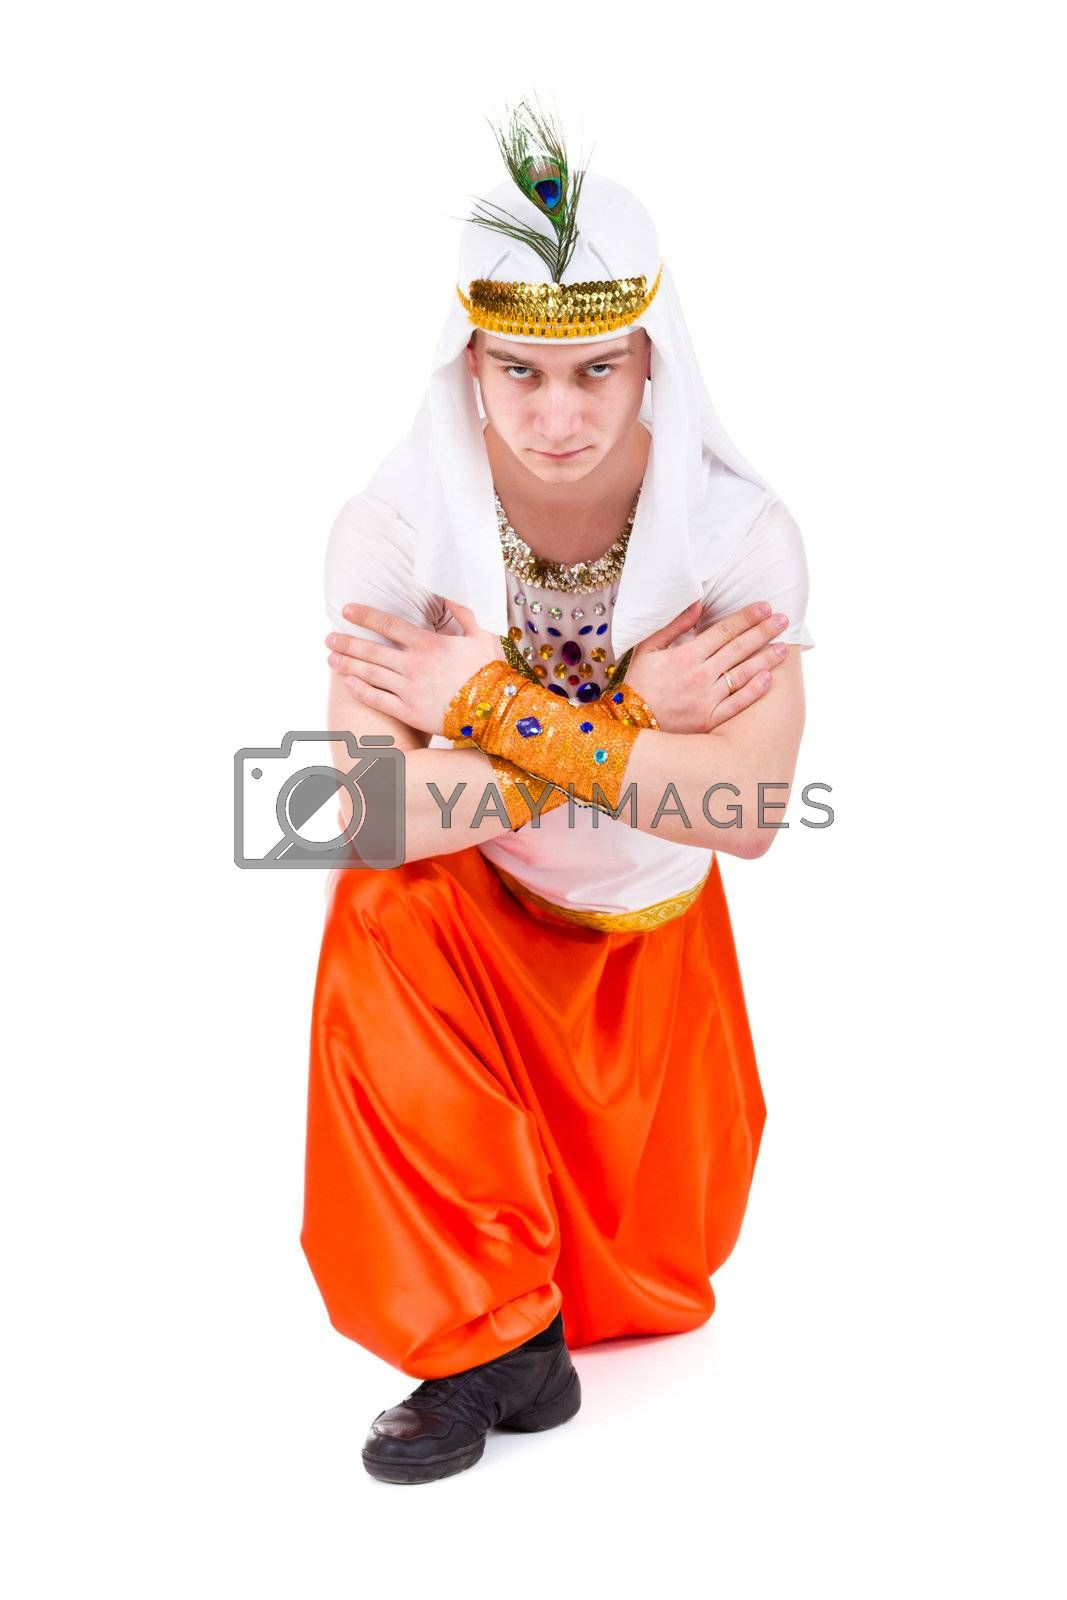 Dancing pharaoh wearing a egyptian costume. Isolated on white background in full length.